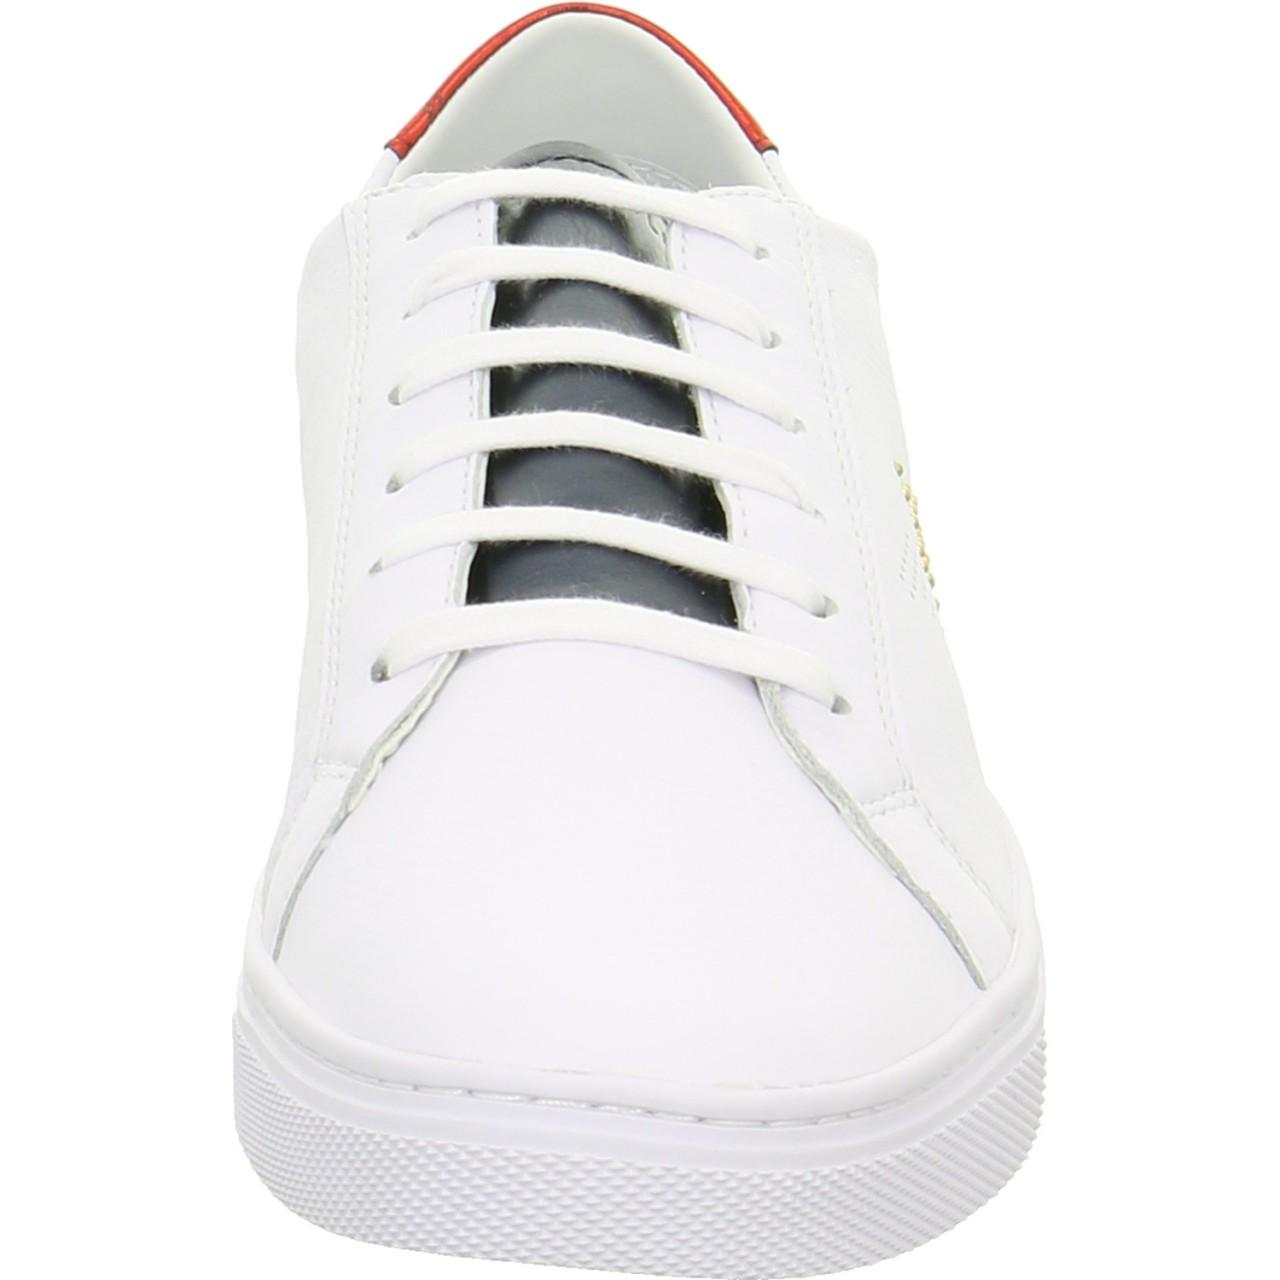 ac809c010a1c Tommy Hilfiger Wo Trainers White 020white blu red in White - Lyst